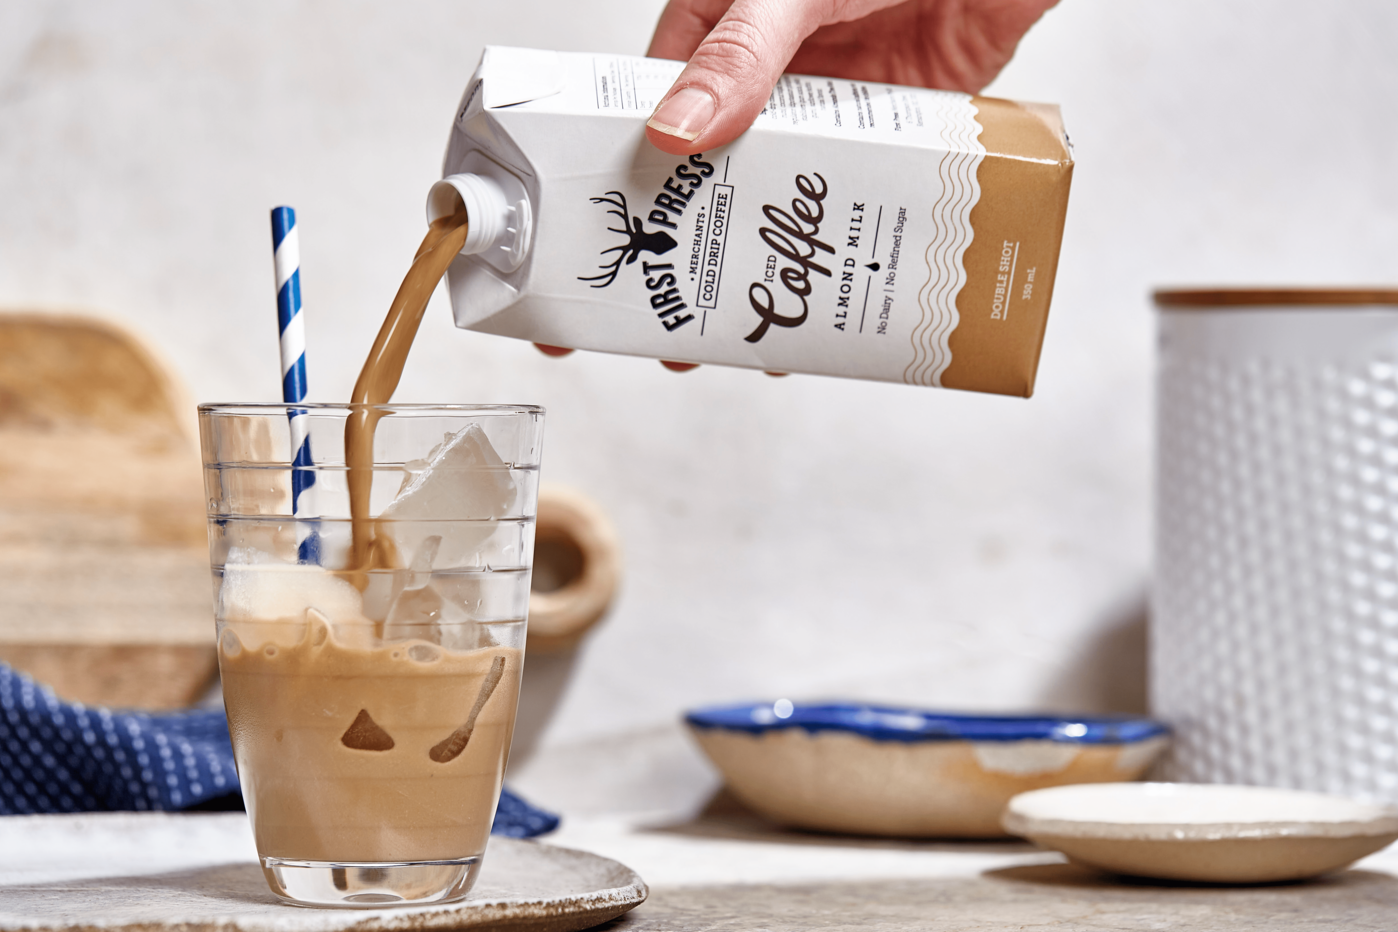 Dairy Free Iced Coffee @ Coles Local